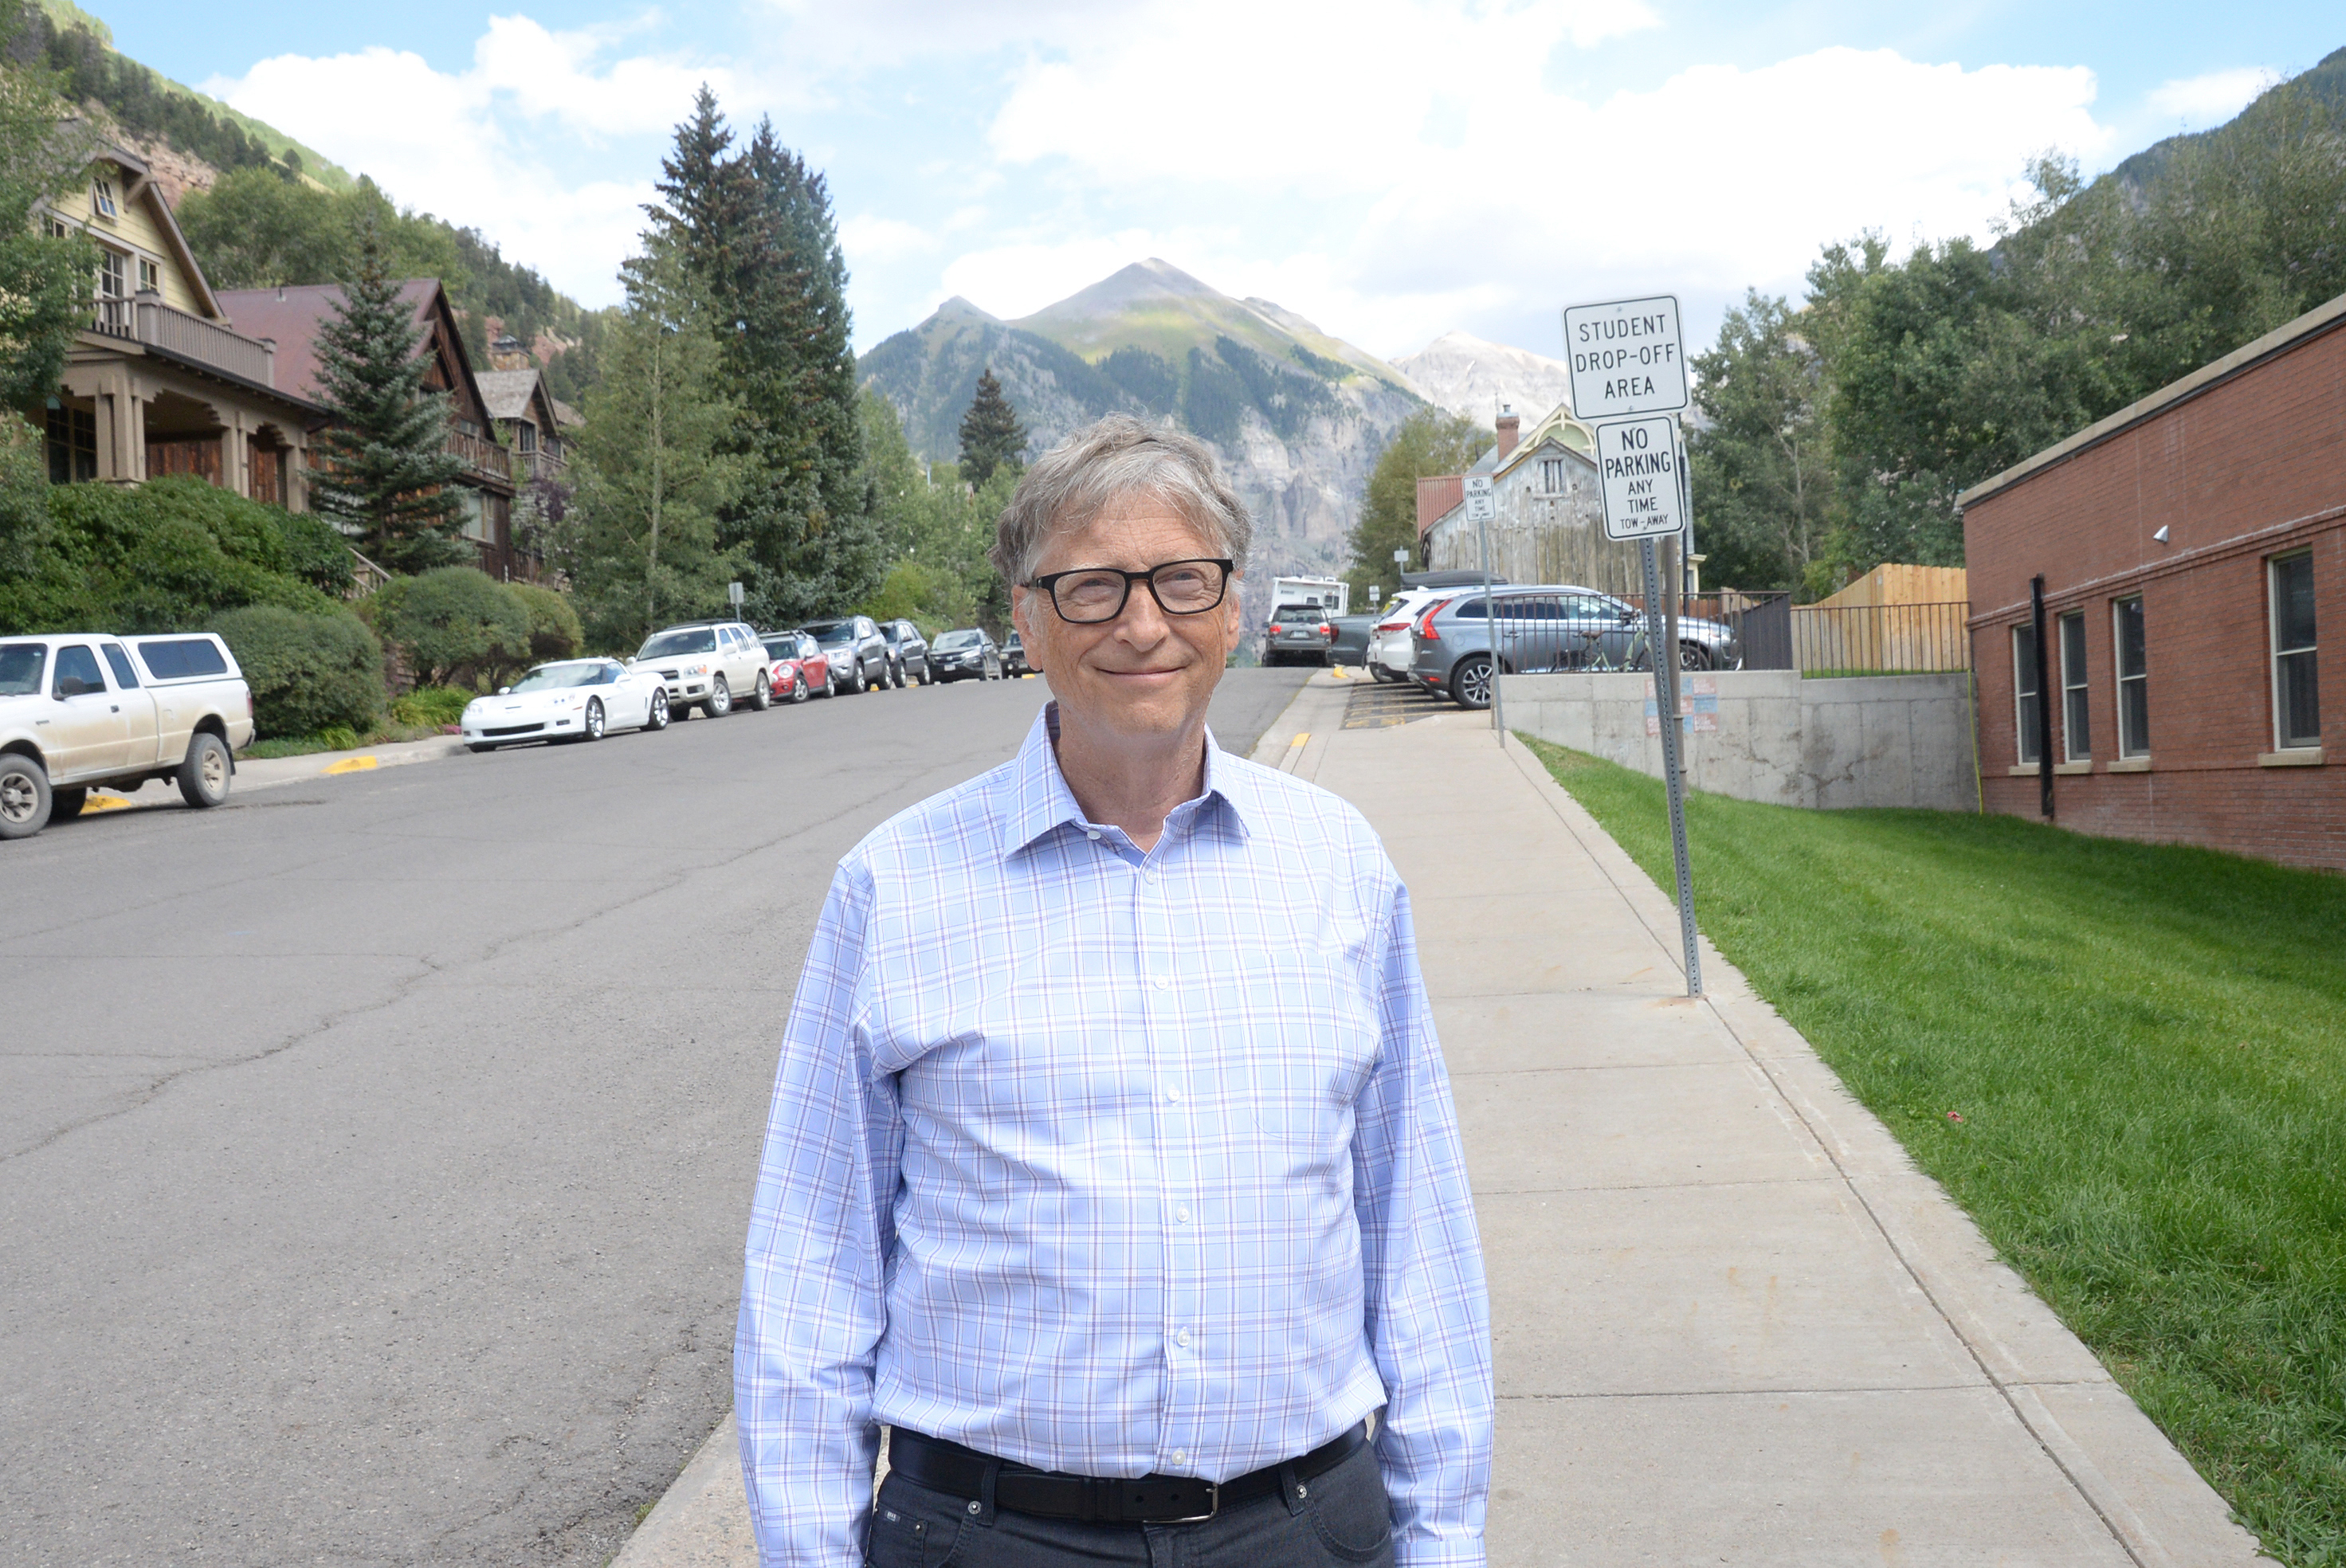 TELLURIDE, CO - AUGUST 31: Bill Gates attends the Telluride Film Festival 2019 on August 31, 2019 in Telluride, Colorado. (Photo by Paul Best/Getty Images)